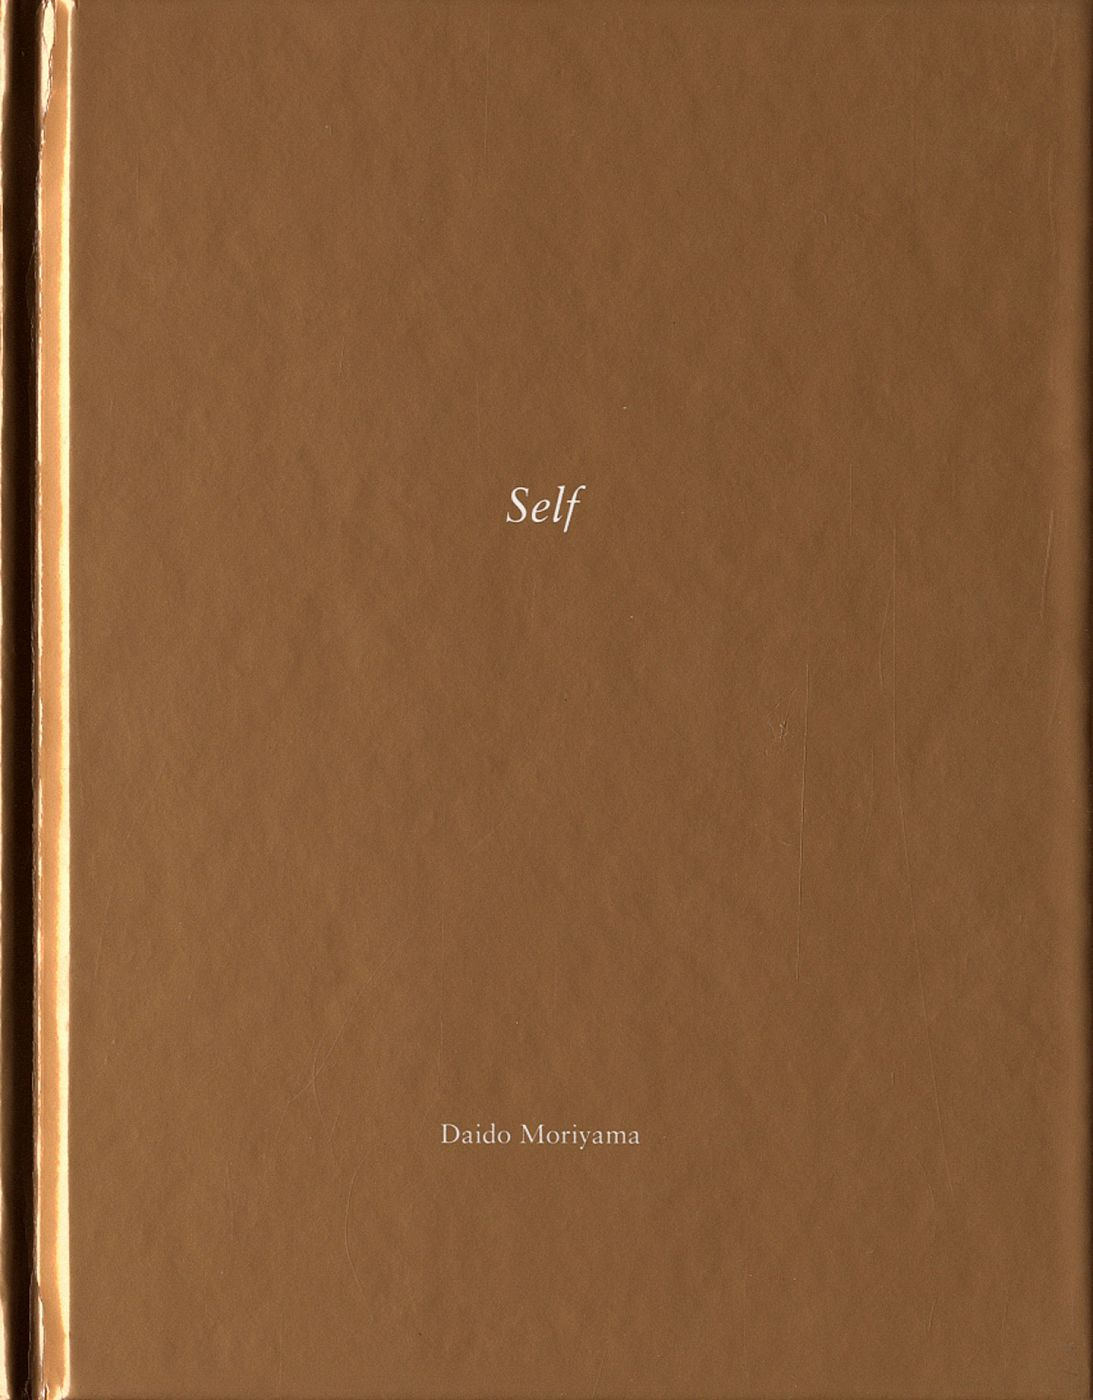 Daido Moriyama: Self (One Picture Book #90), Limited Edition (with Print)